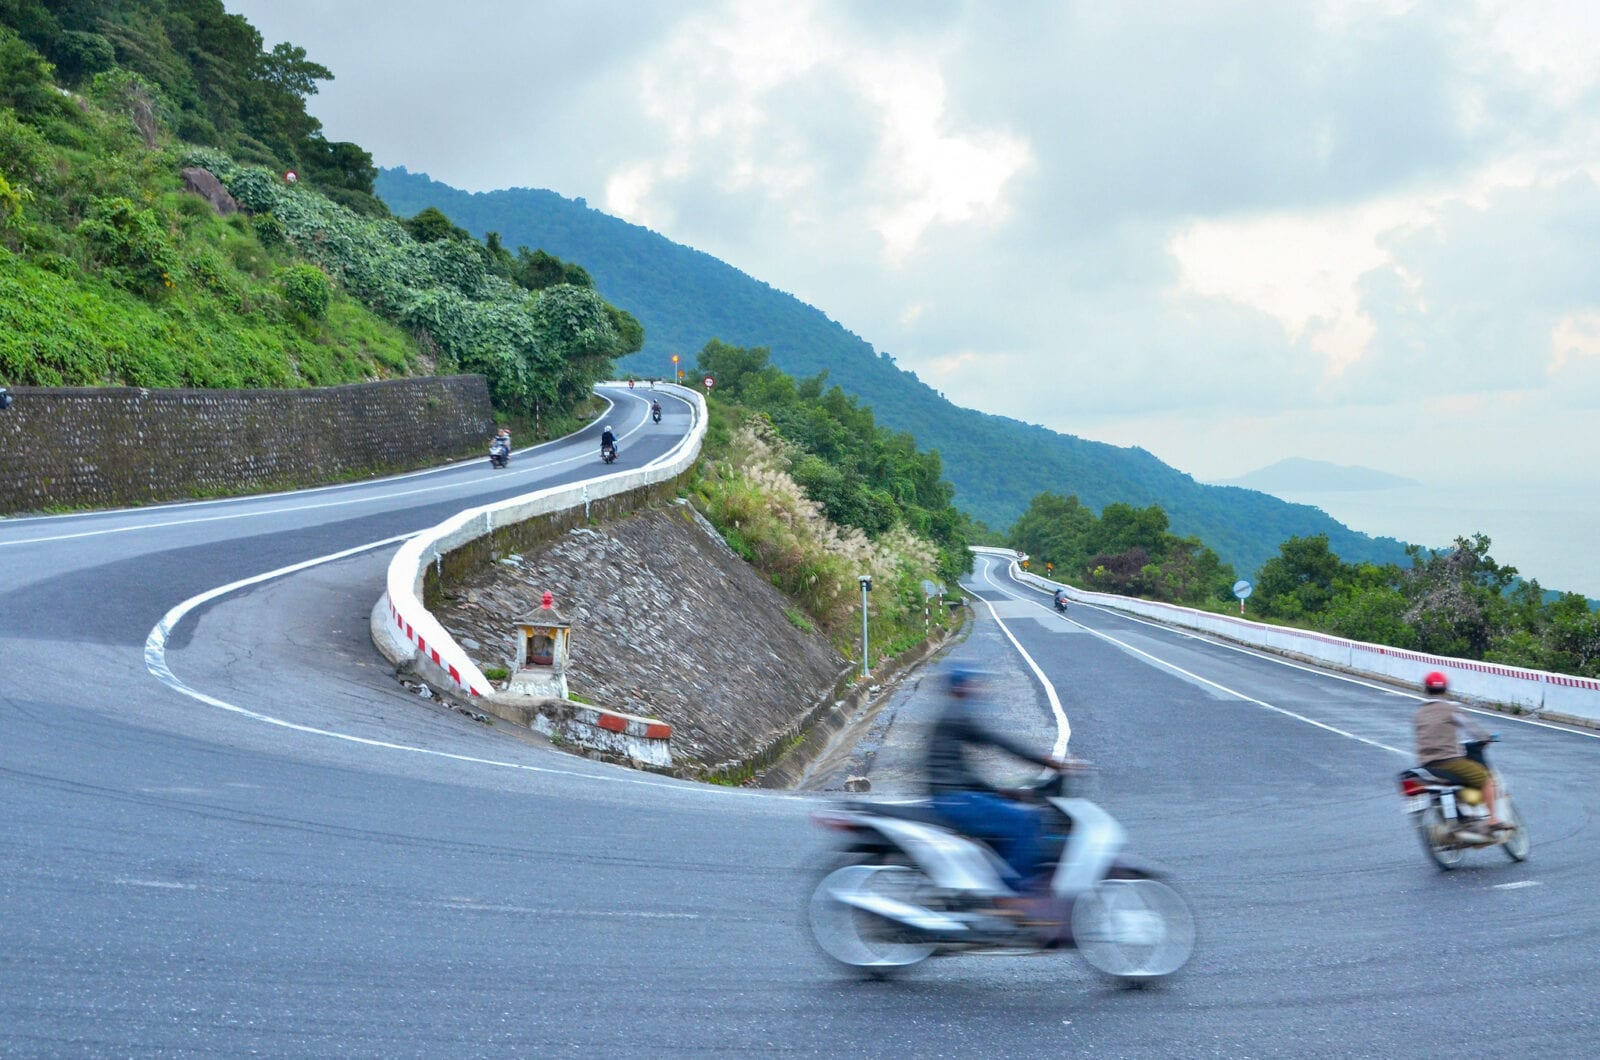 Image of people on a motorcycles on the hai van pass in vietnam